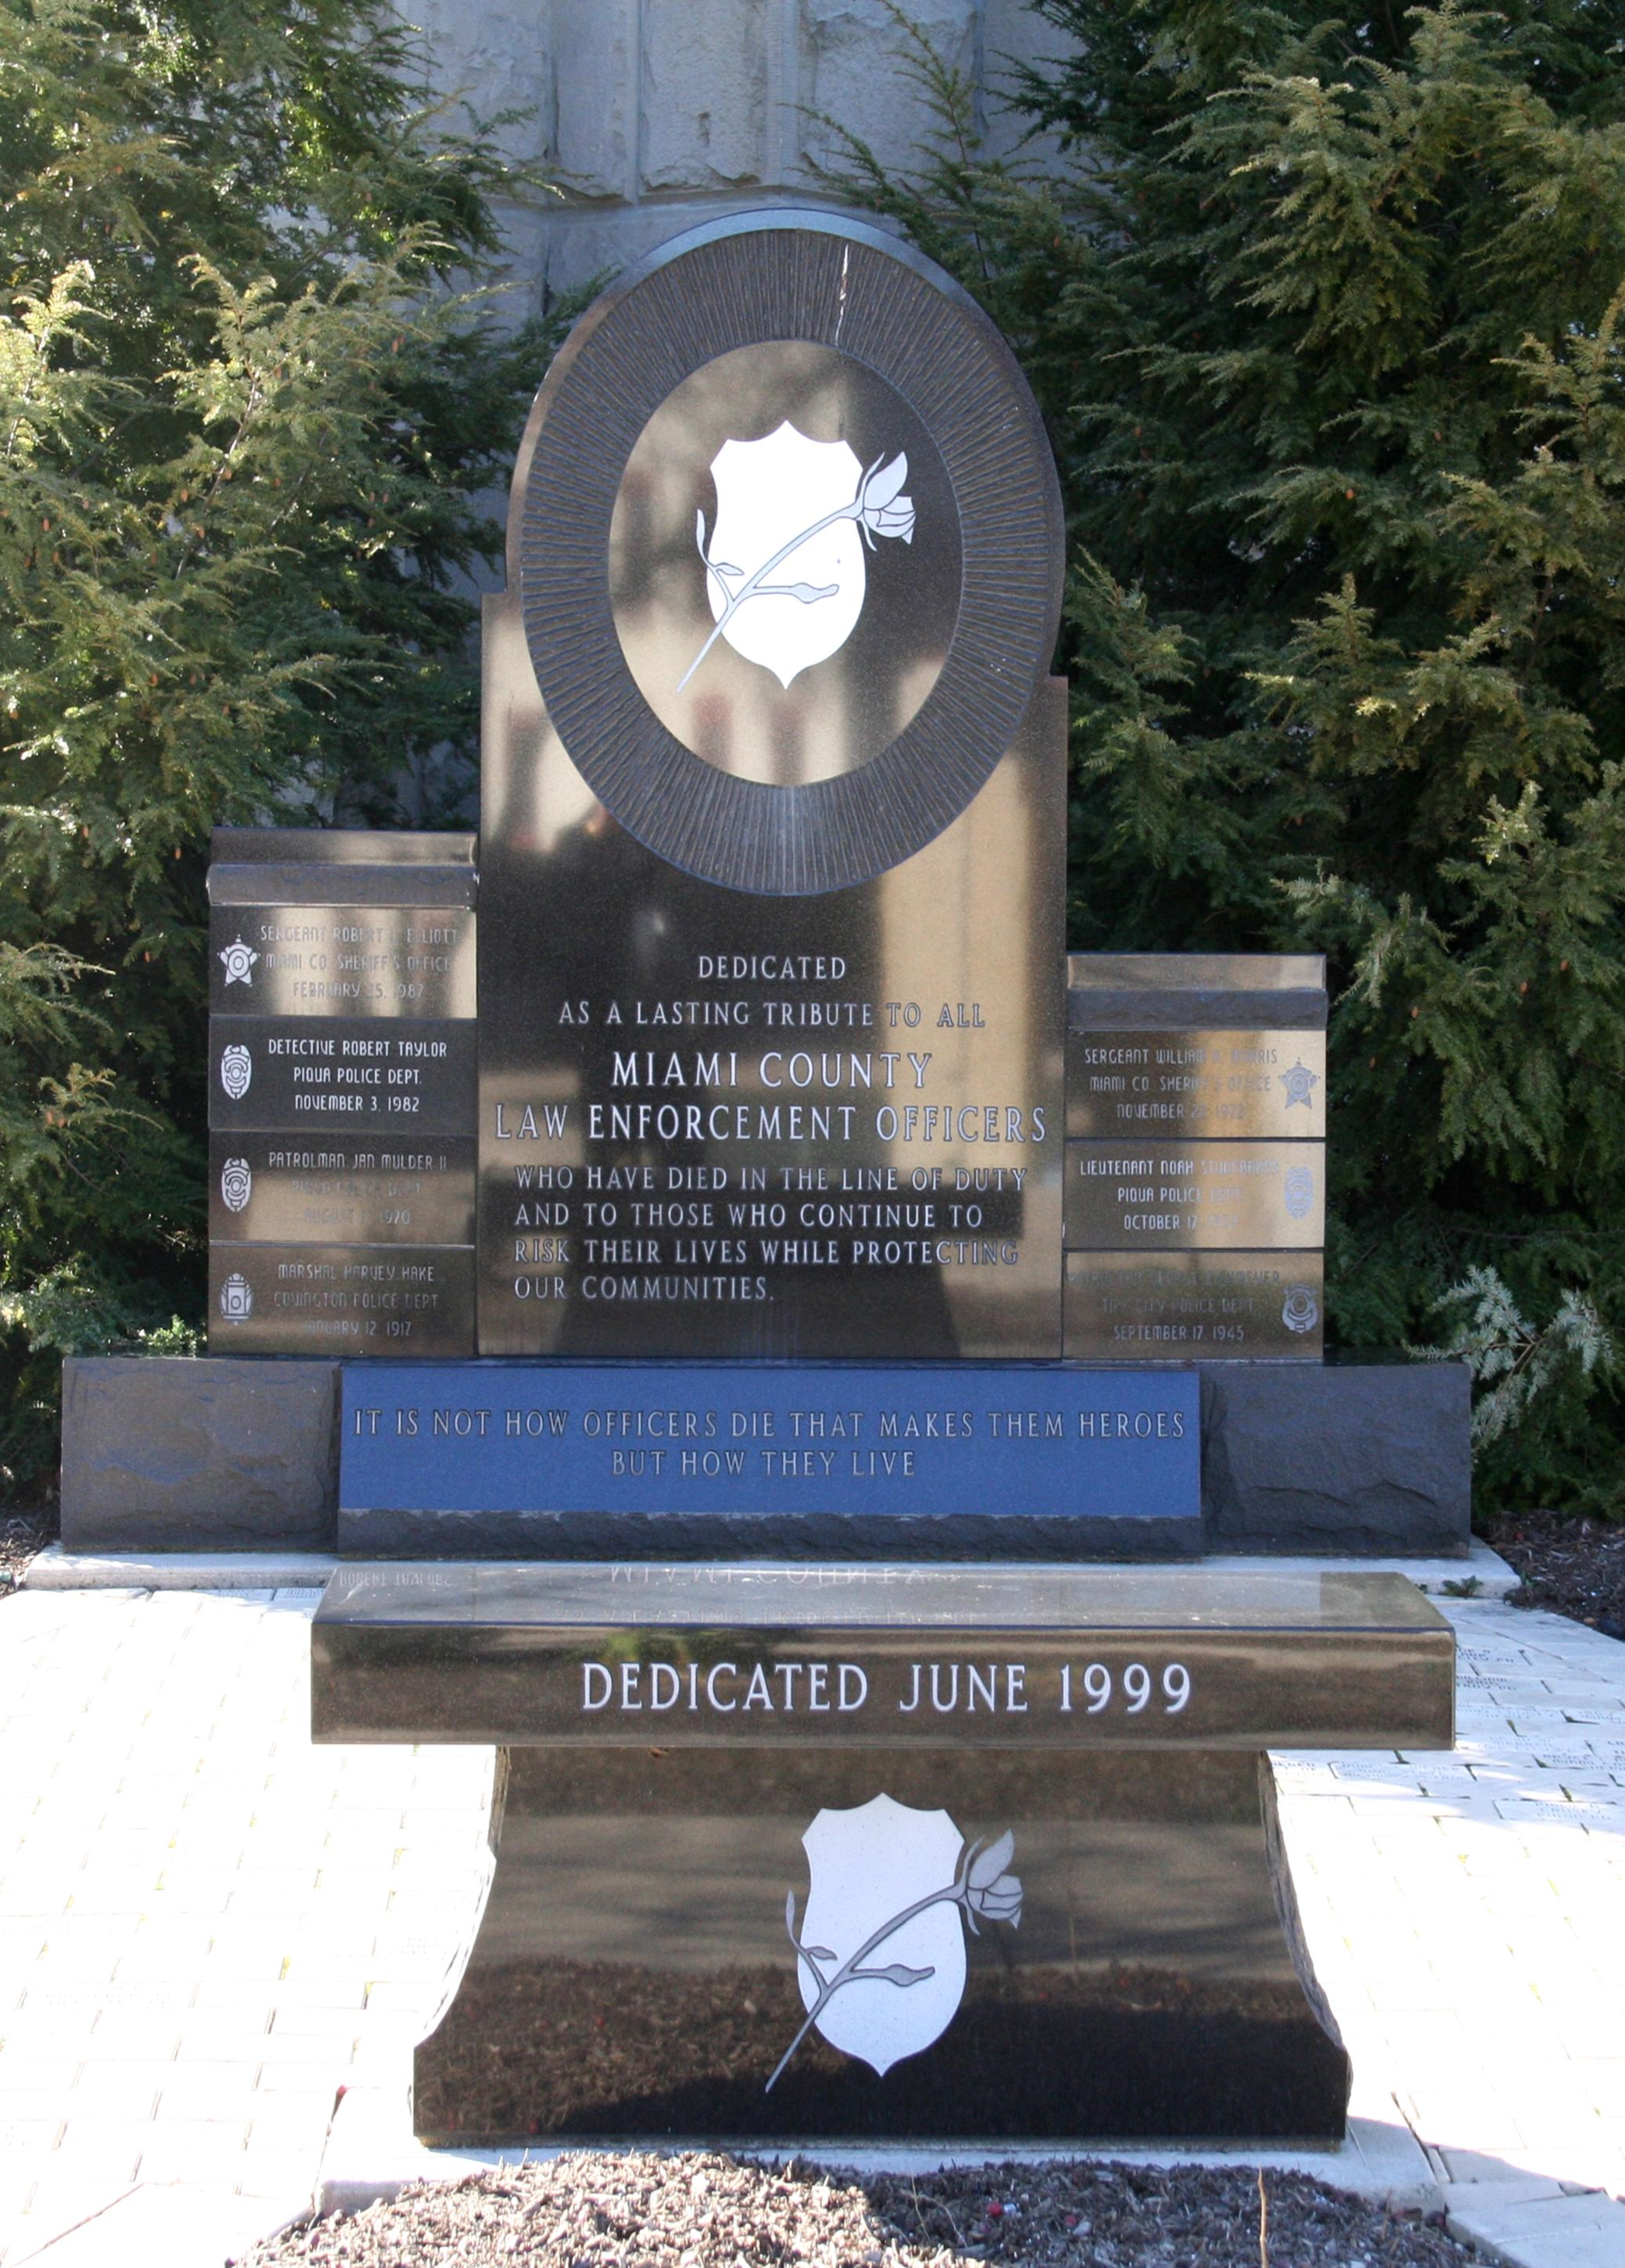 Photo of Miami County Law Enforcement Memorial